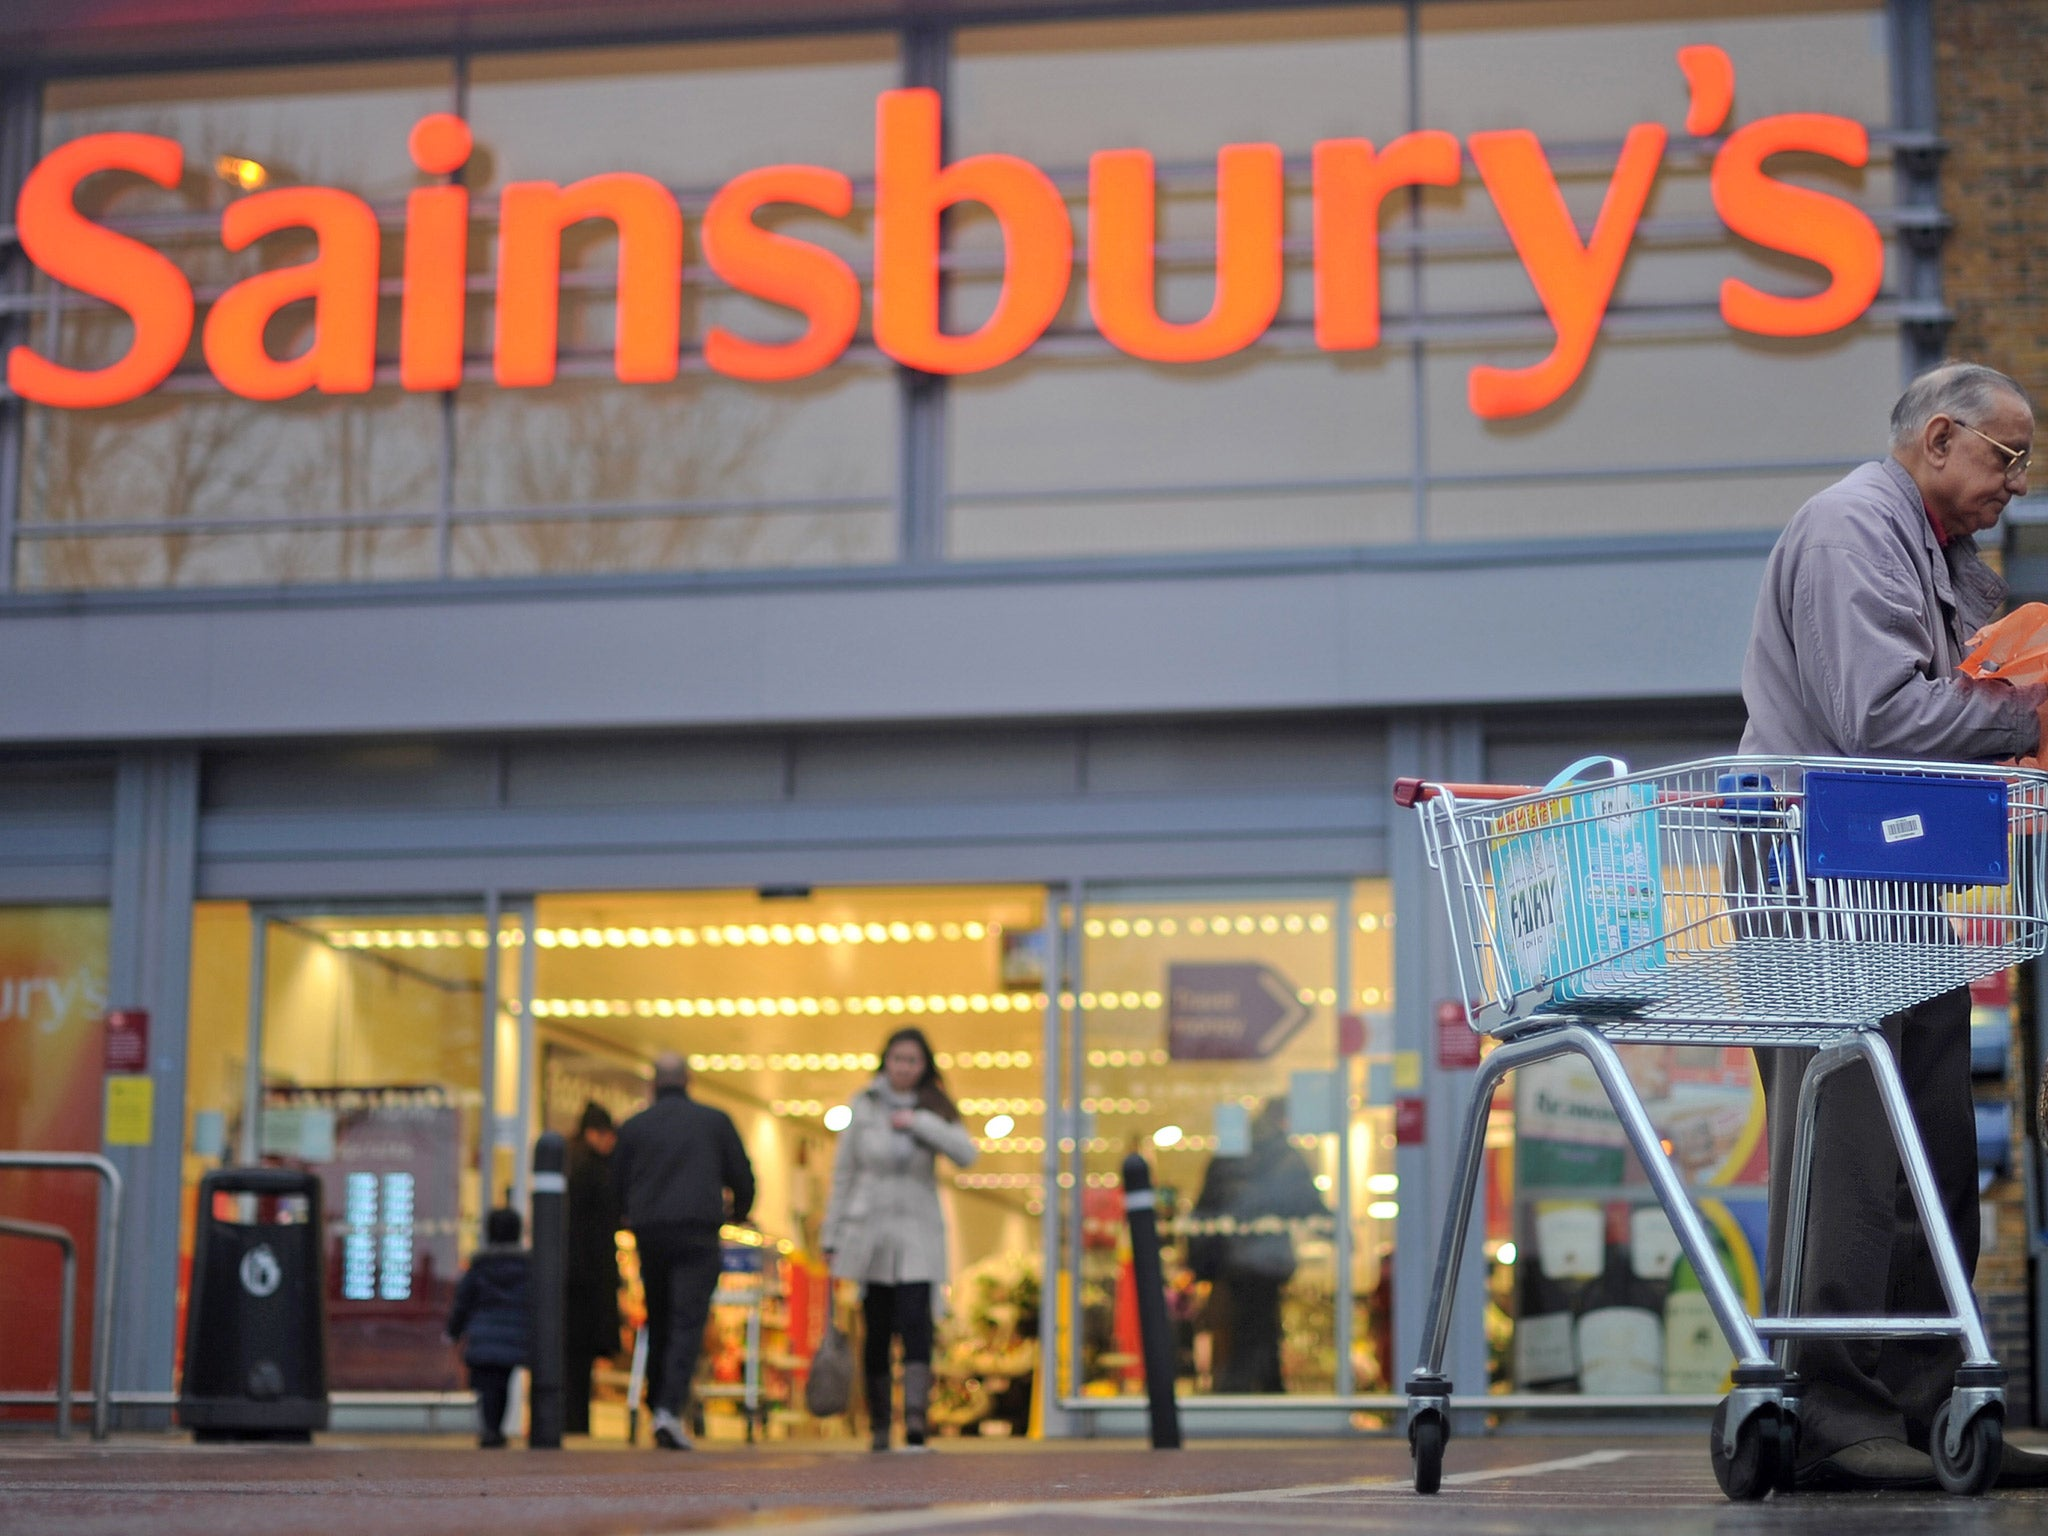 supermarket retailing tesco vs sainsburys essay Tesco was founded in 1919 and launched its first store in edgware, london, uk in 1929 (tesco, 2010) however, over the decades it has evolved to become the market leader within the uk food retail segment (datamonitor, 2010.